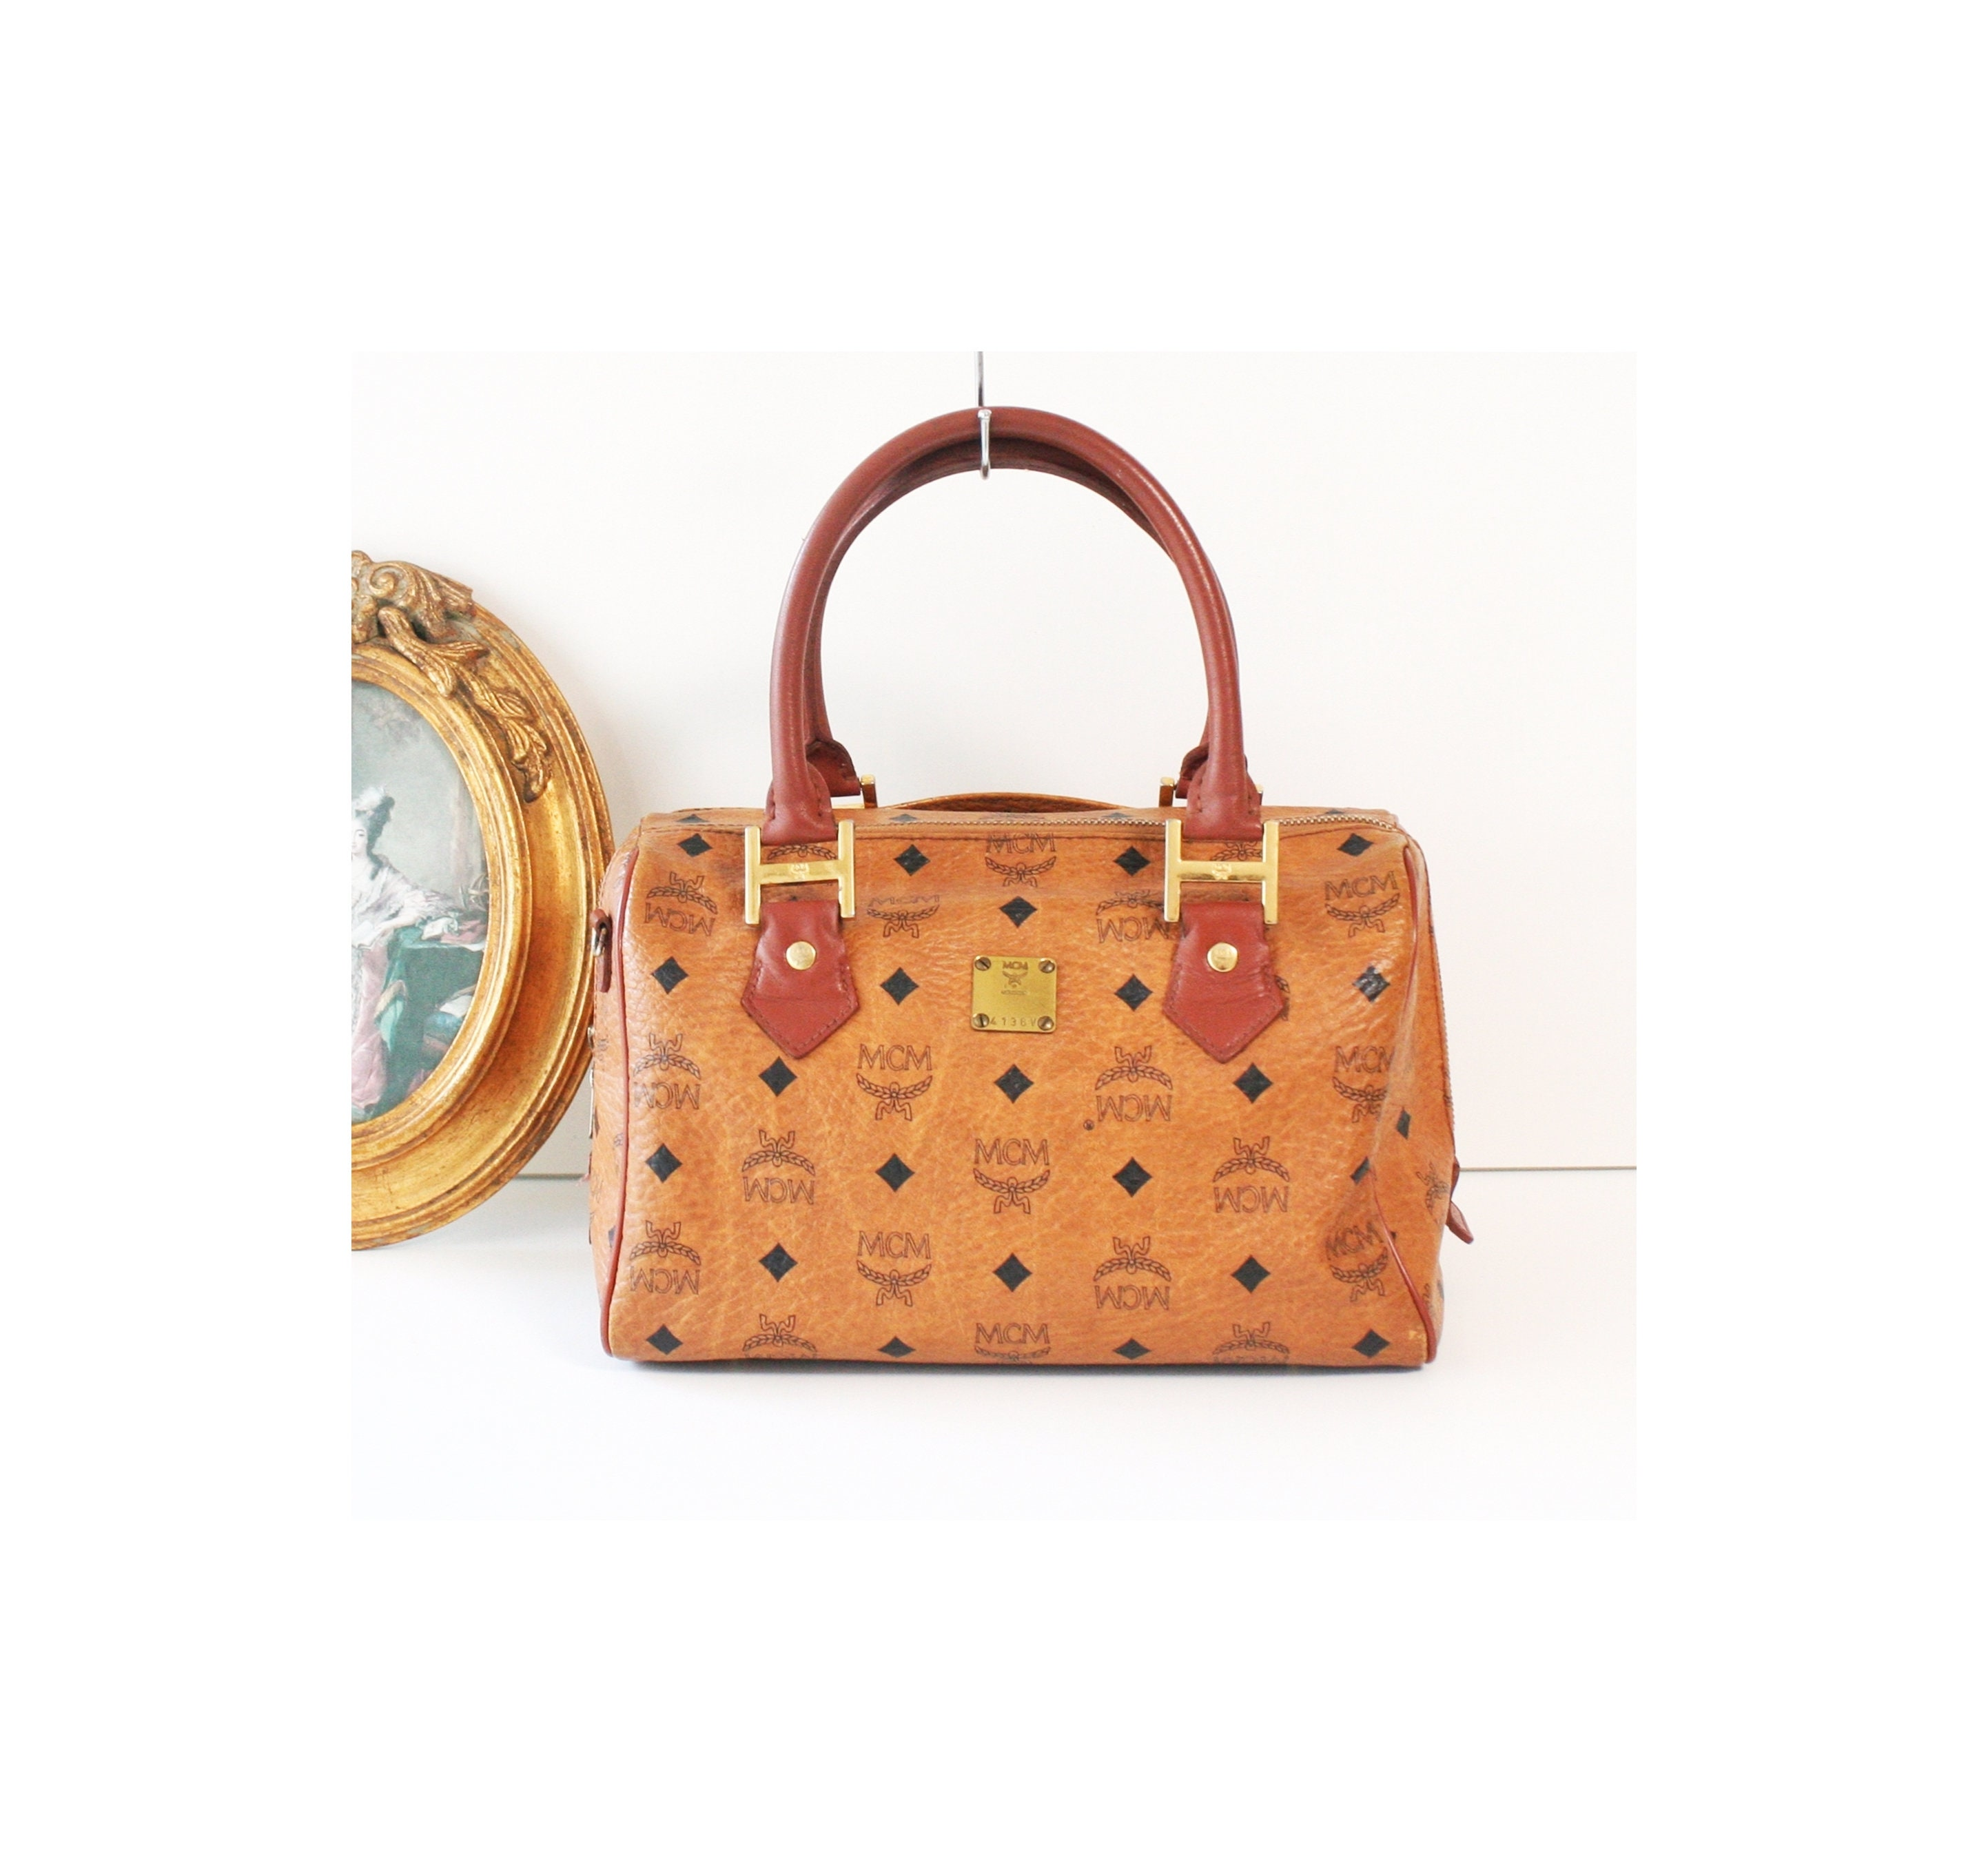 cfb151a76cfb MCM Visetos Cognac Brown Monogram Boston tote handbag